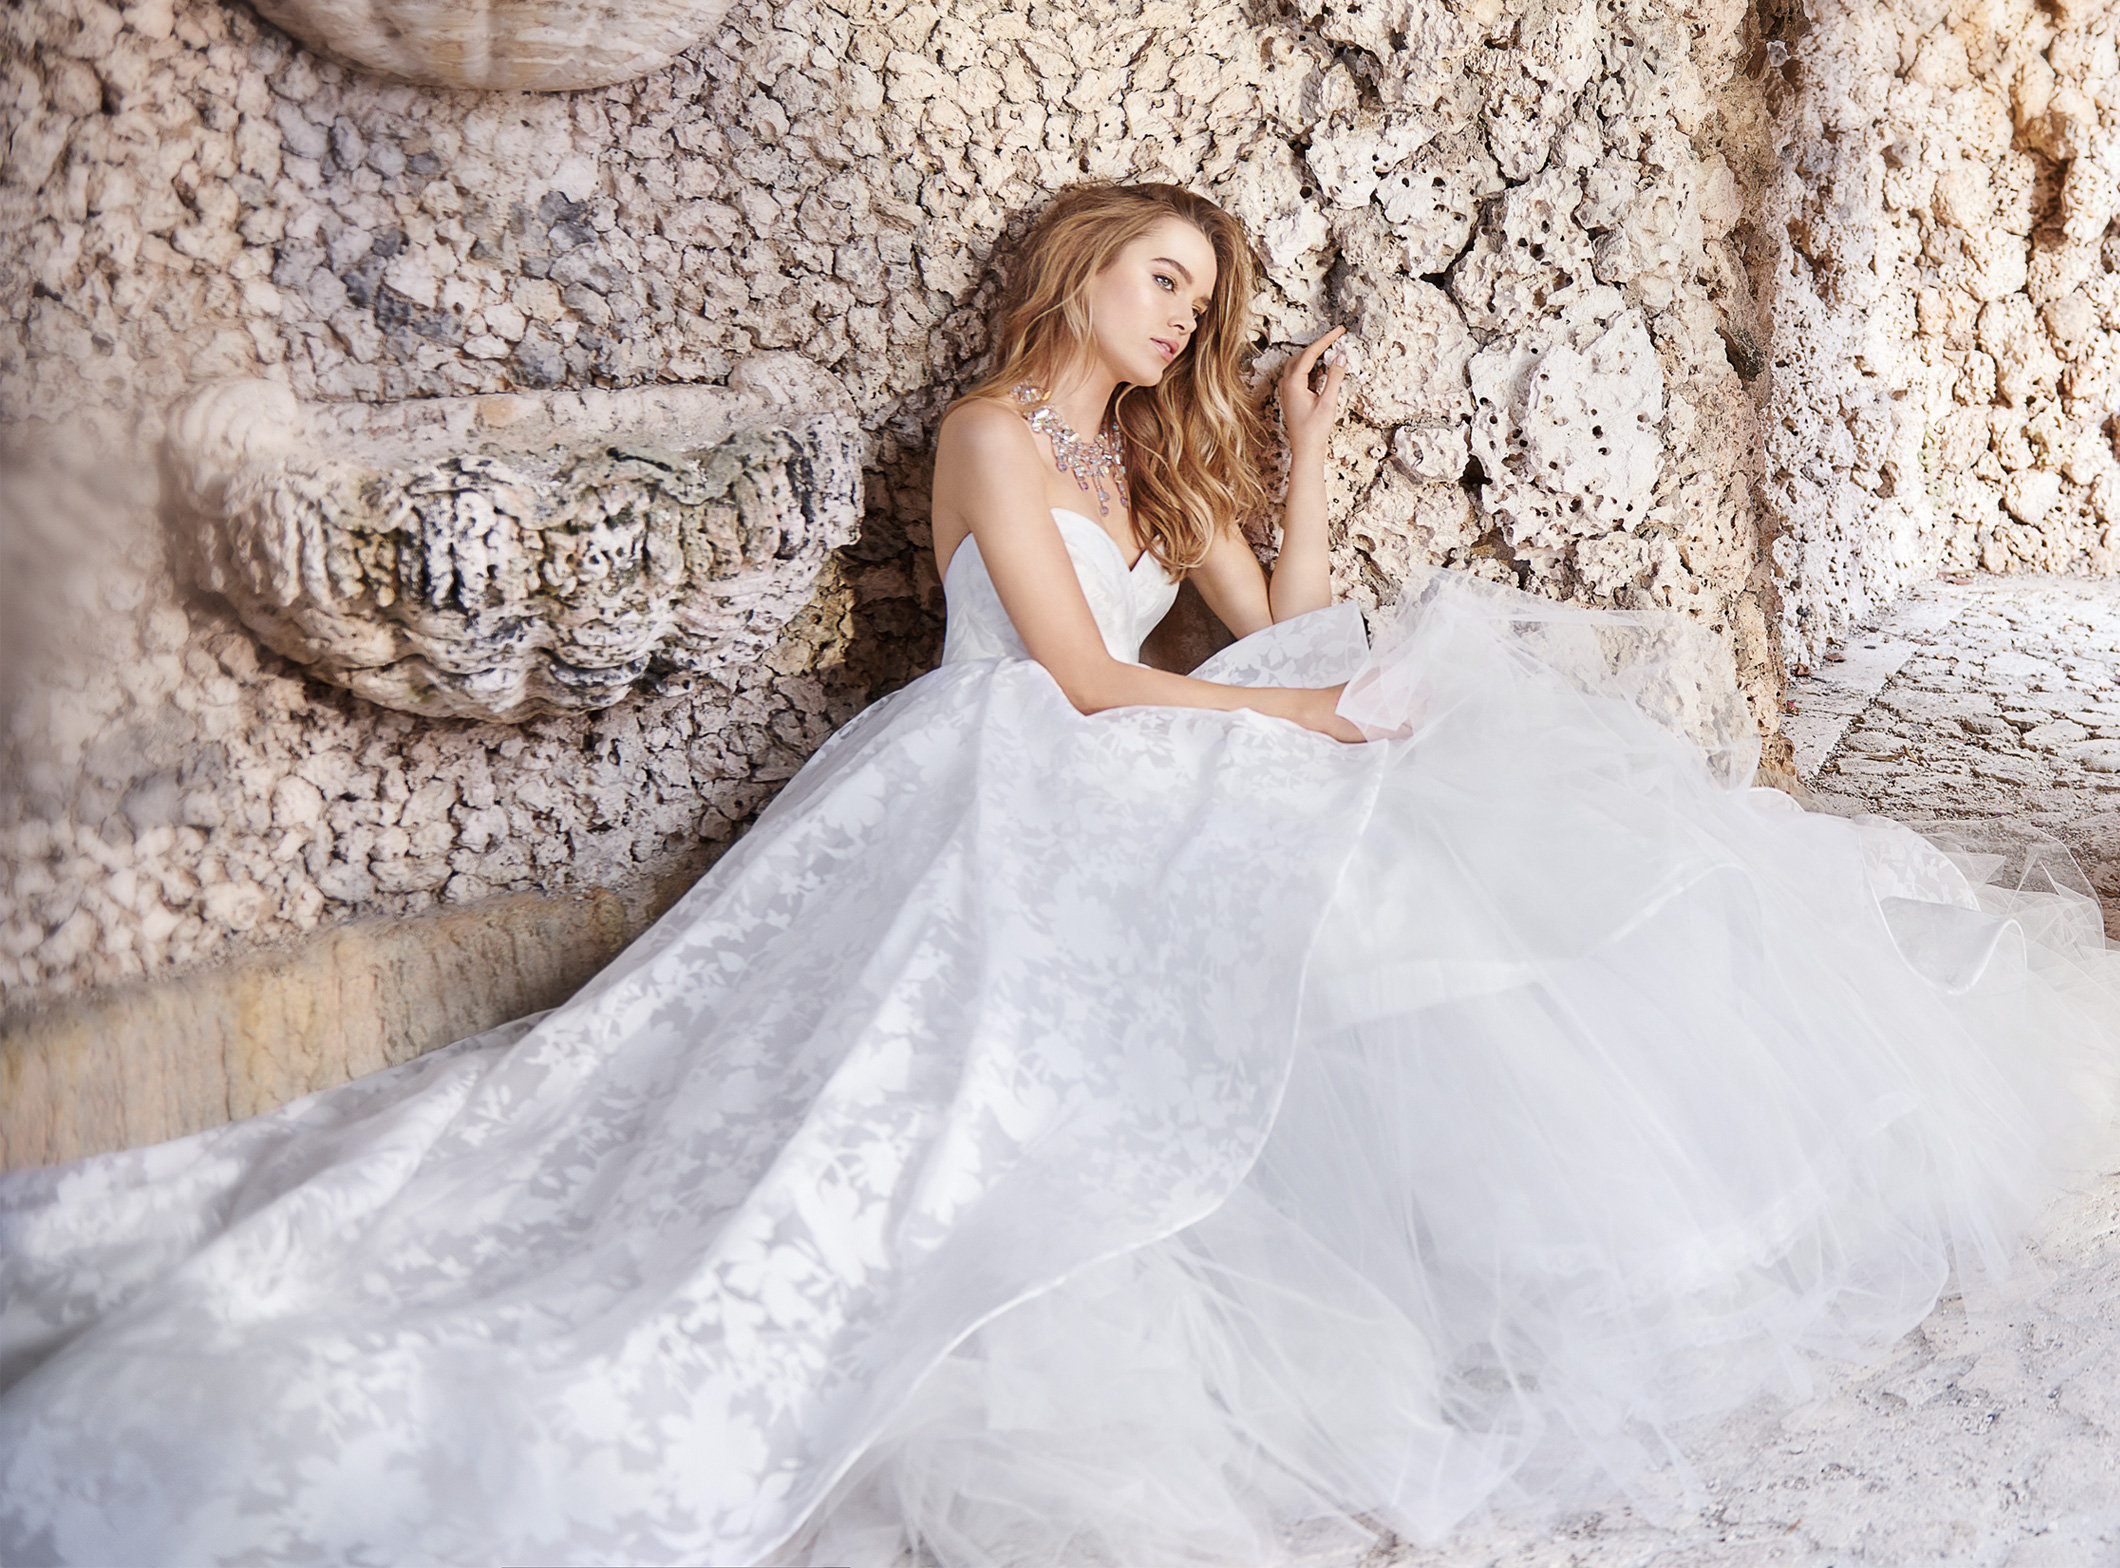 Wedding Gowns 2015: Bridal Gowns And Wedding Dresses By JLM Couture